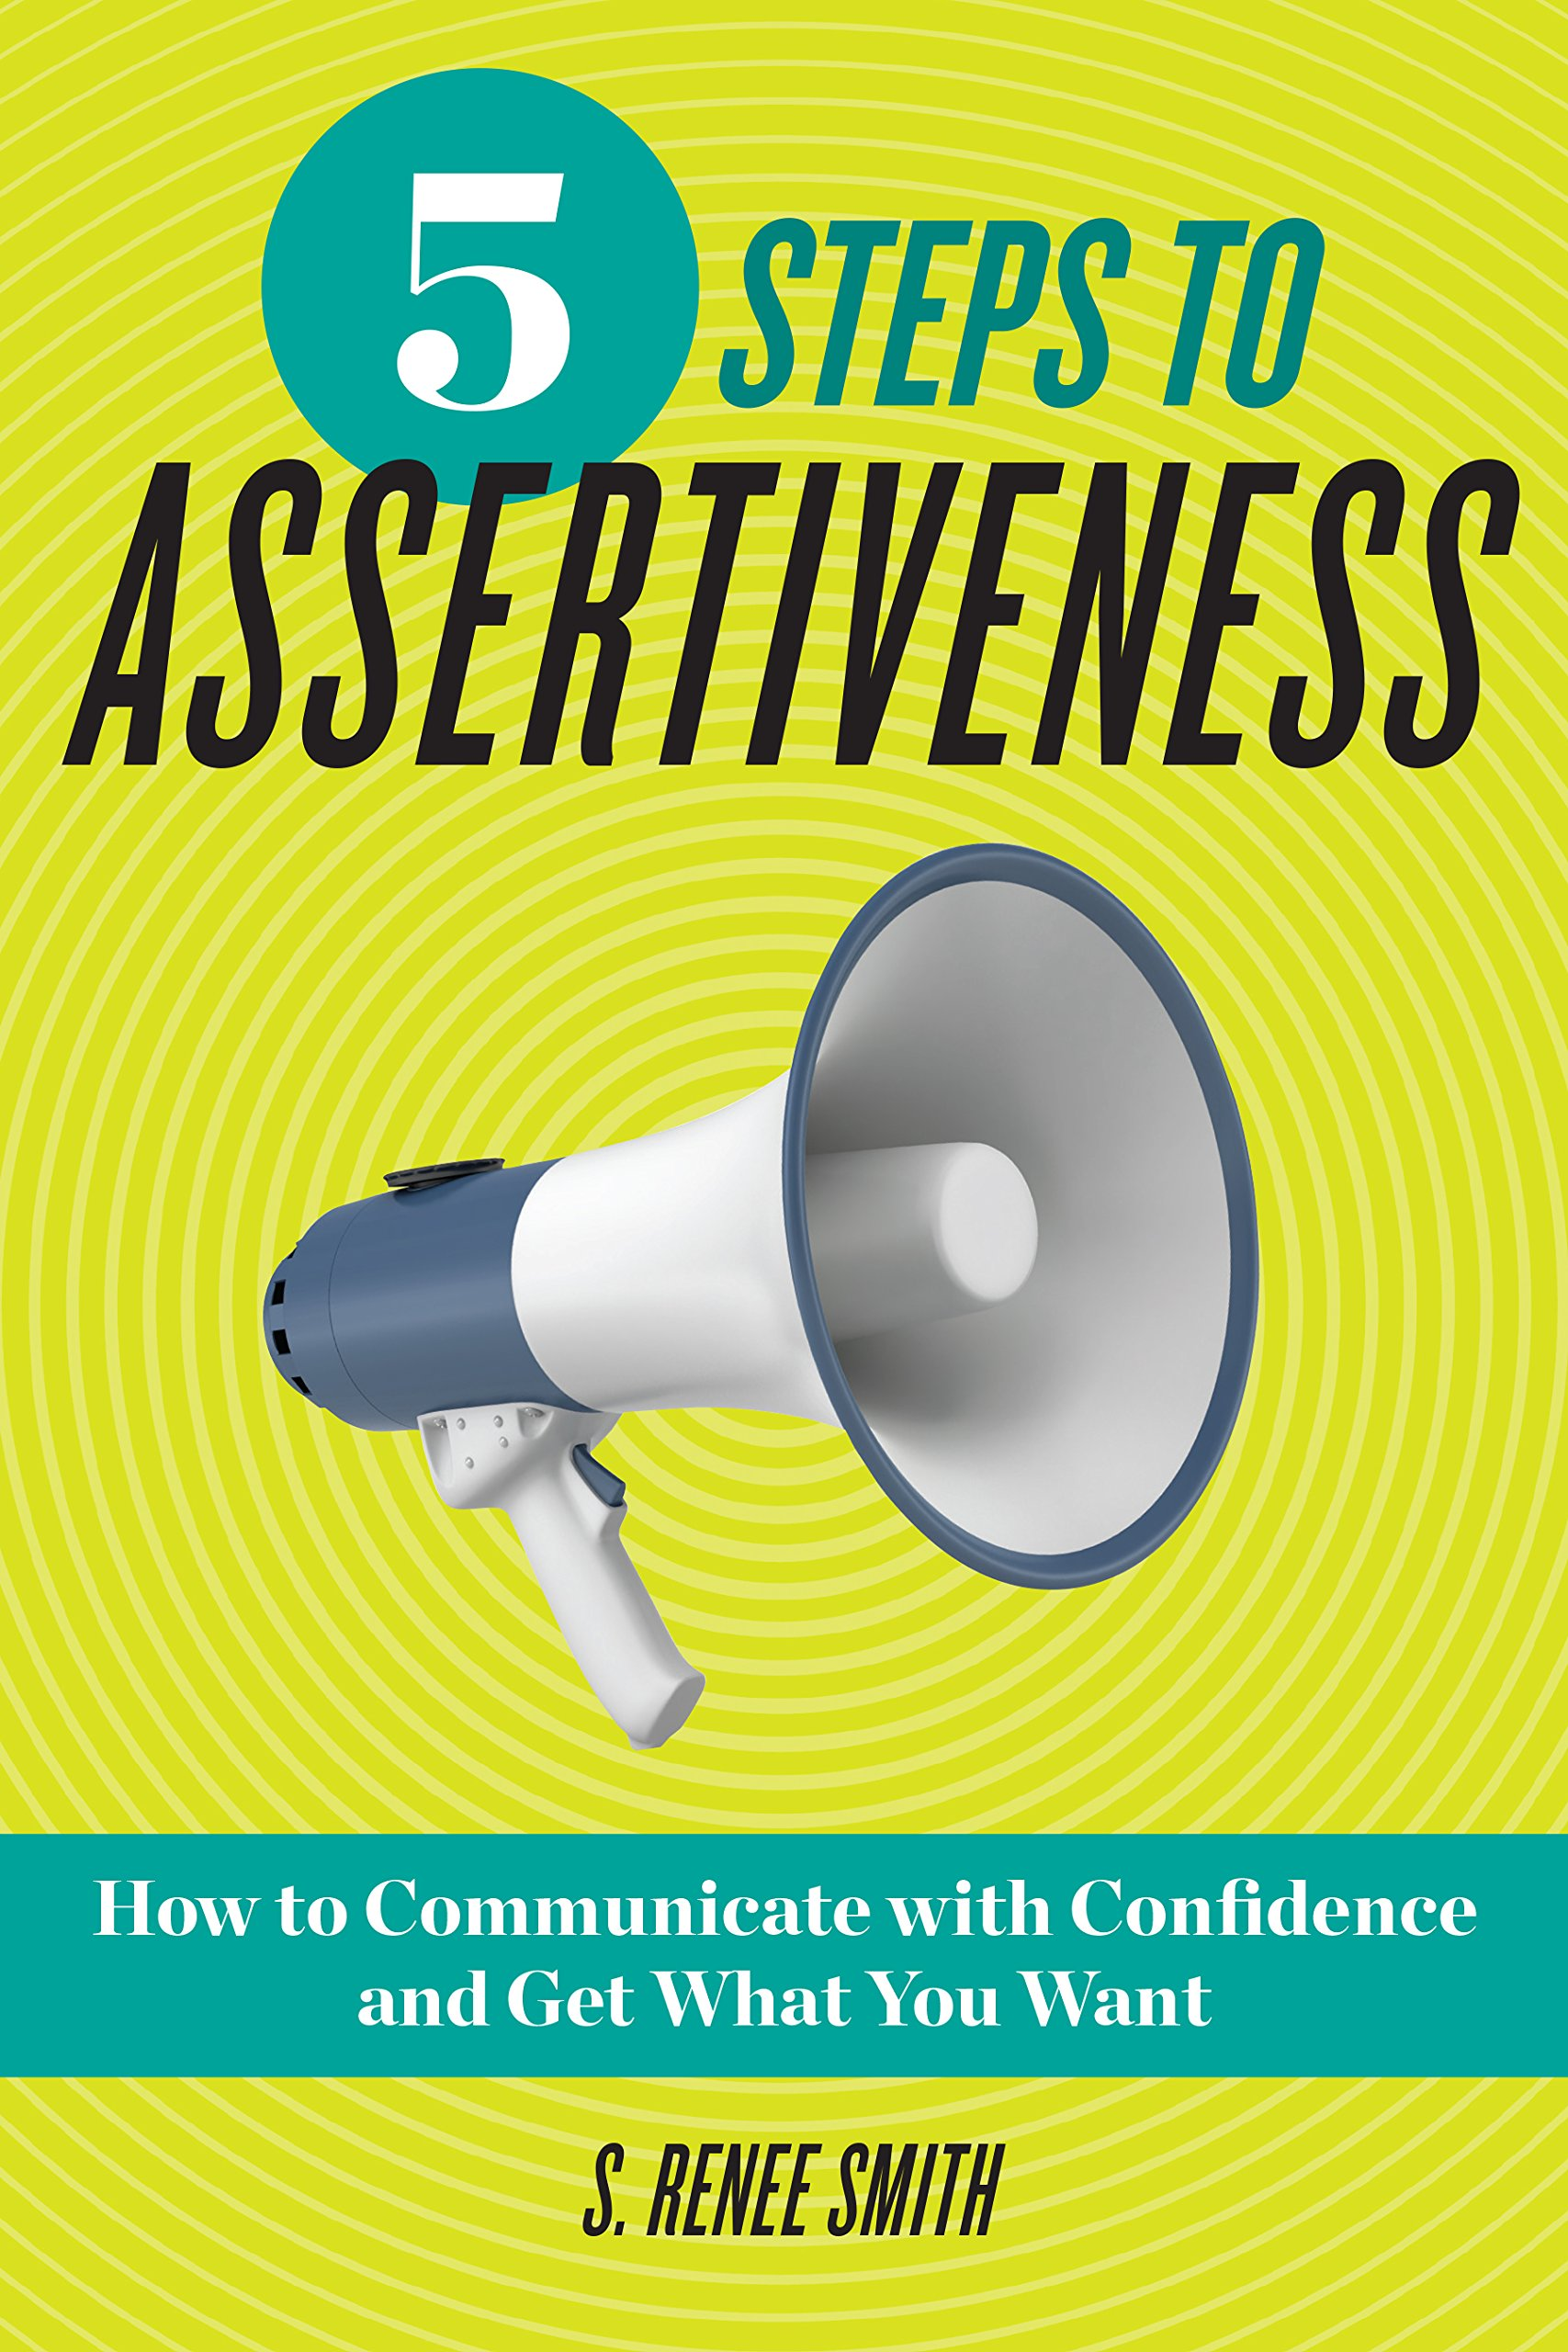 5 Steps to Assertiveness: How to Communicate with Confidence and Get What You Want ebook